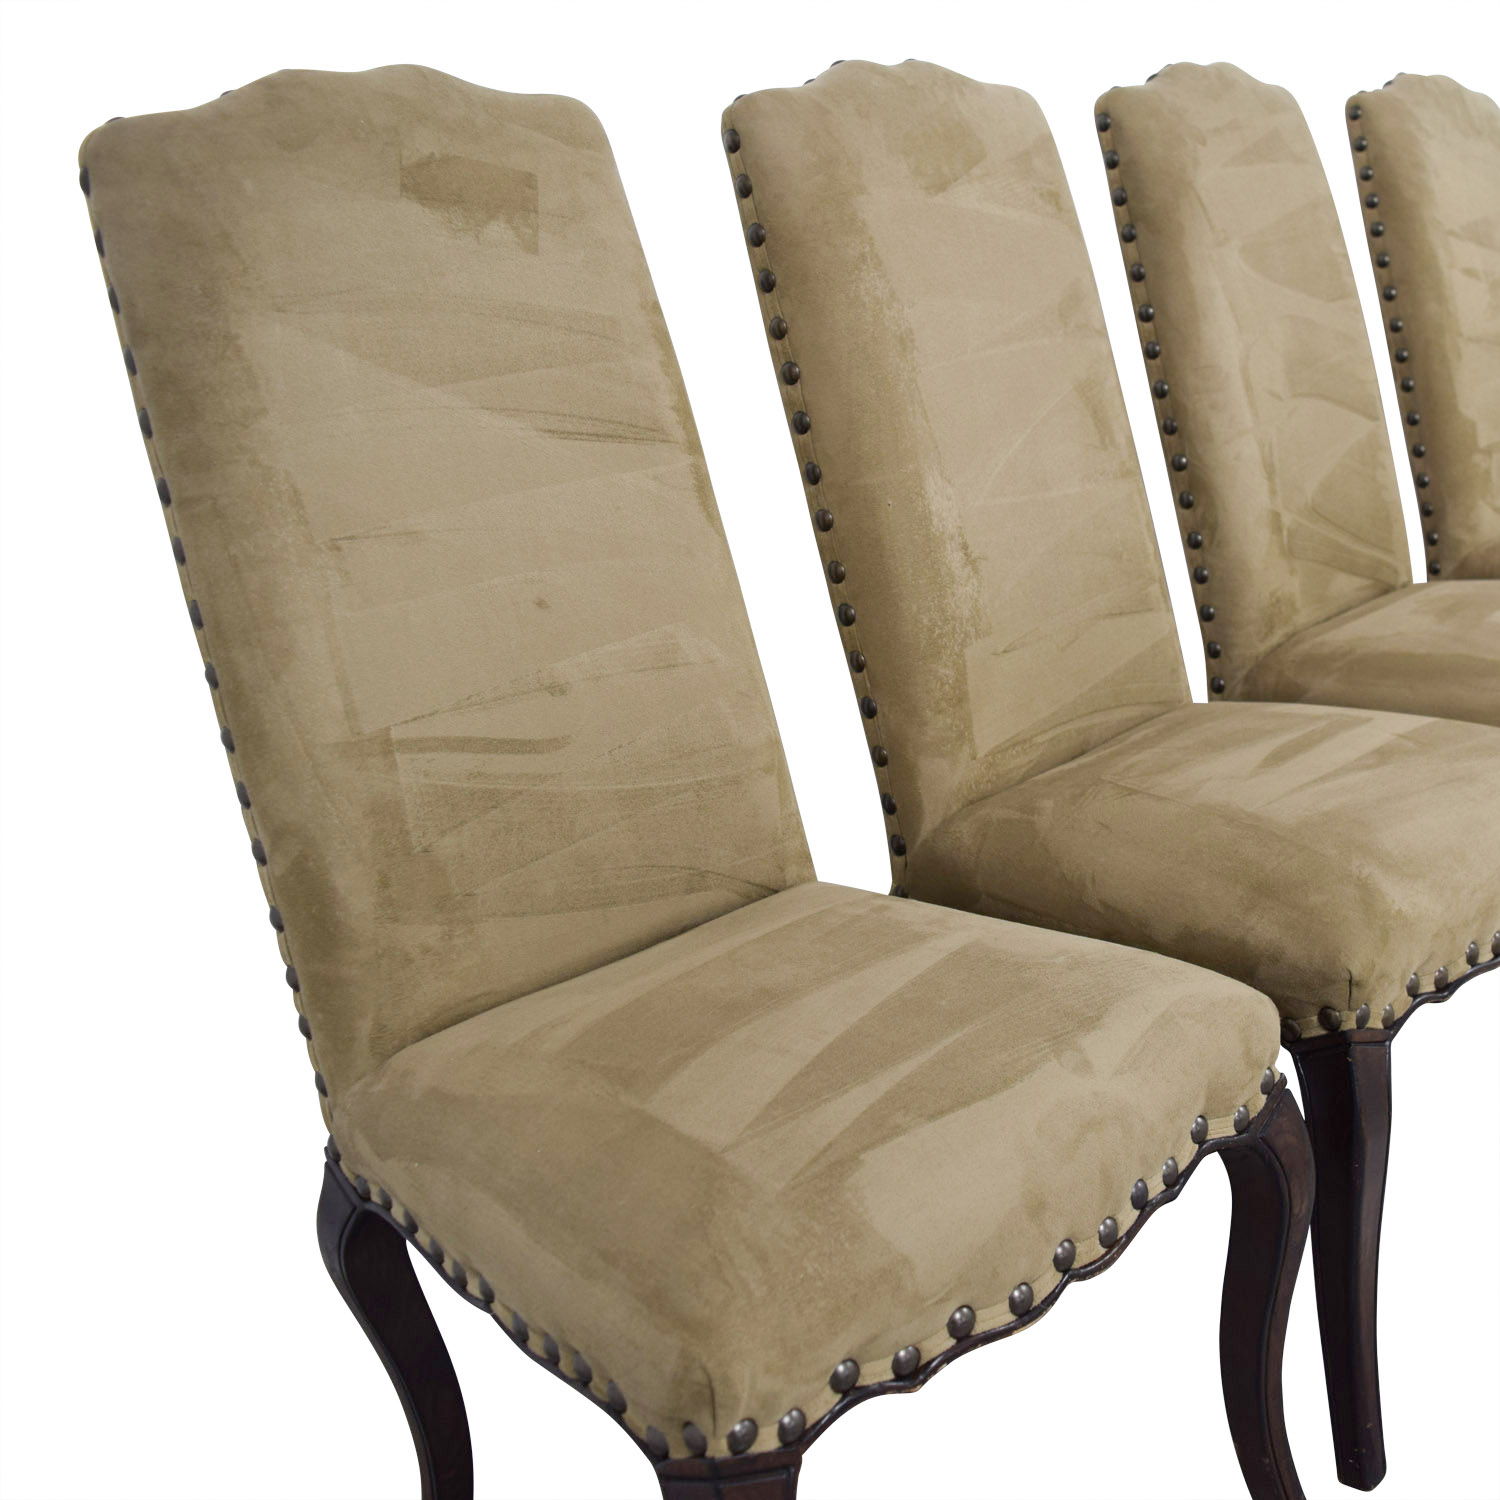 90% OFF - Pottery Barn Pottery Barn Calais Microsuede Tan Nailhead Dining  Chairs / Chairs